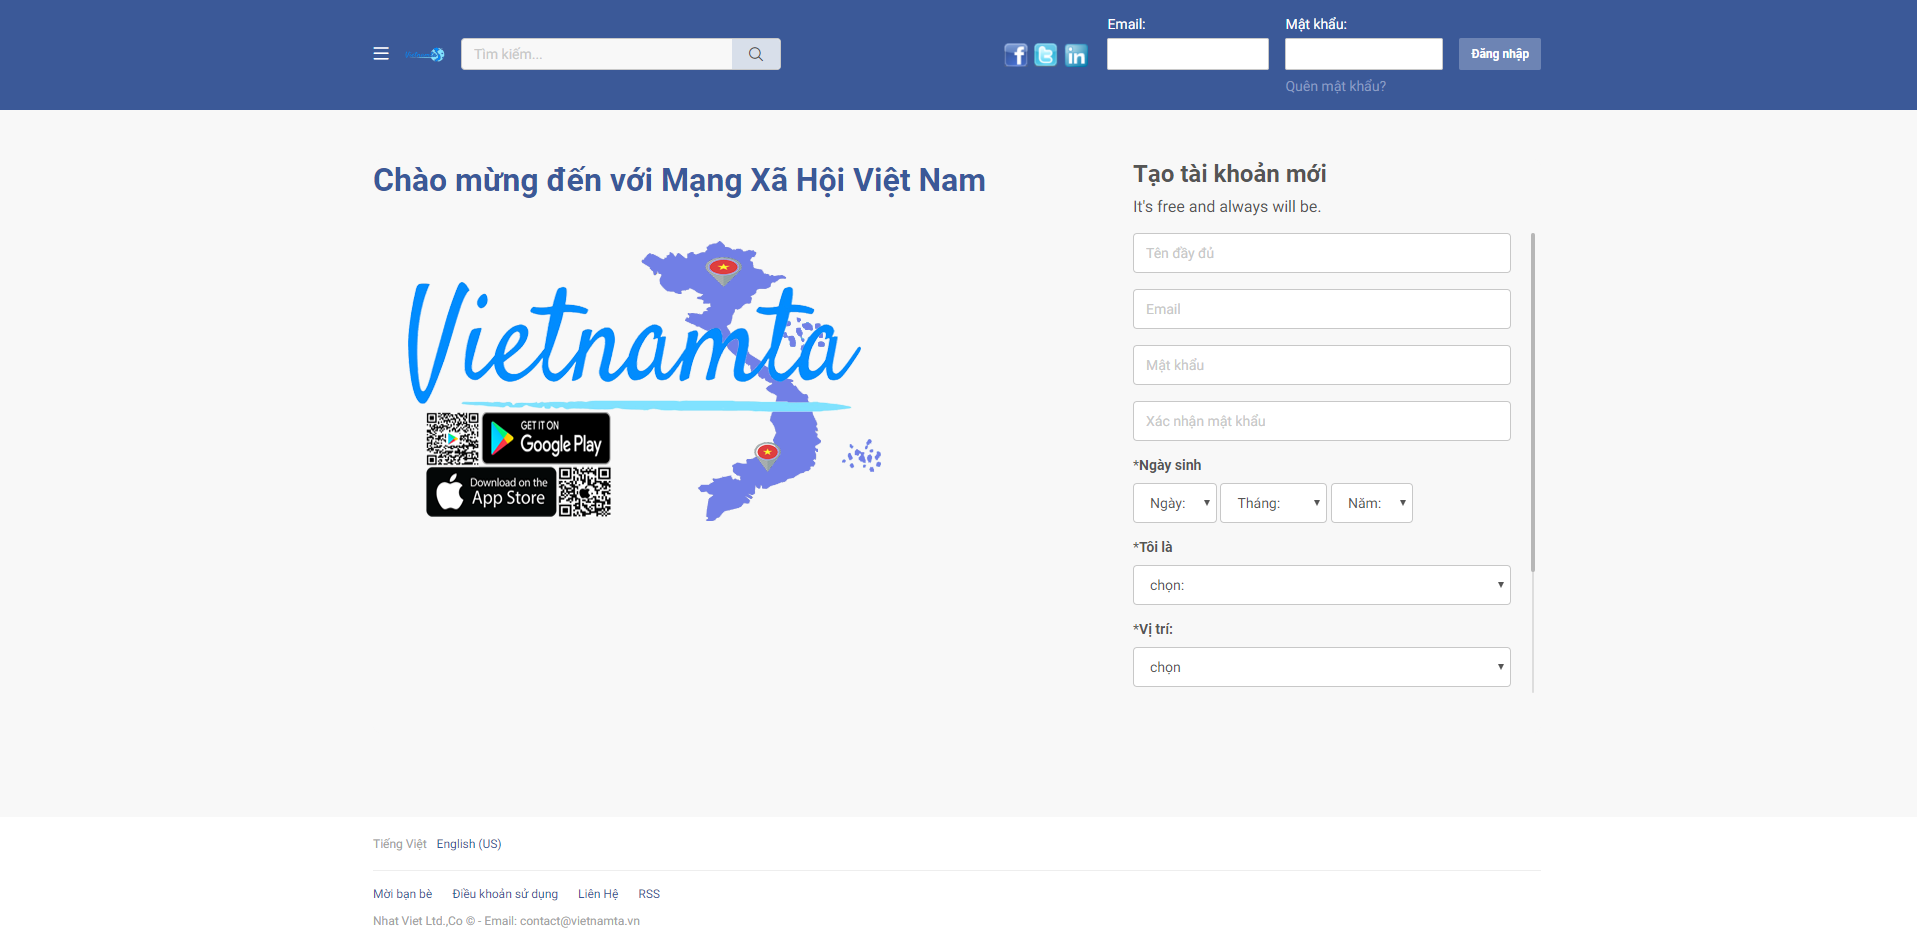 ​Self-proclaimed 'Facebook alternatives' raise security concerns in Vietnam